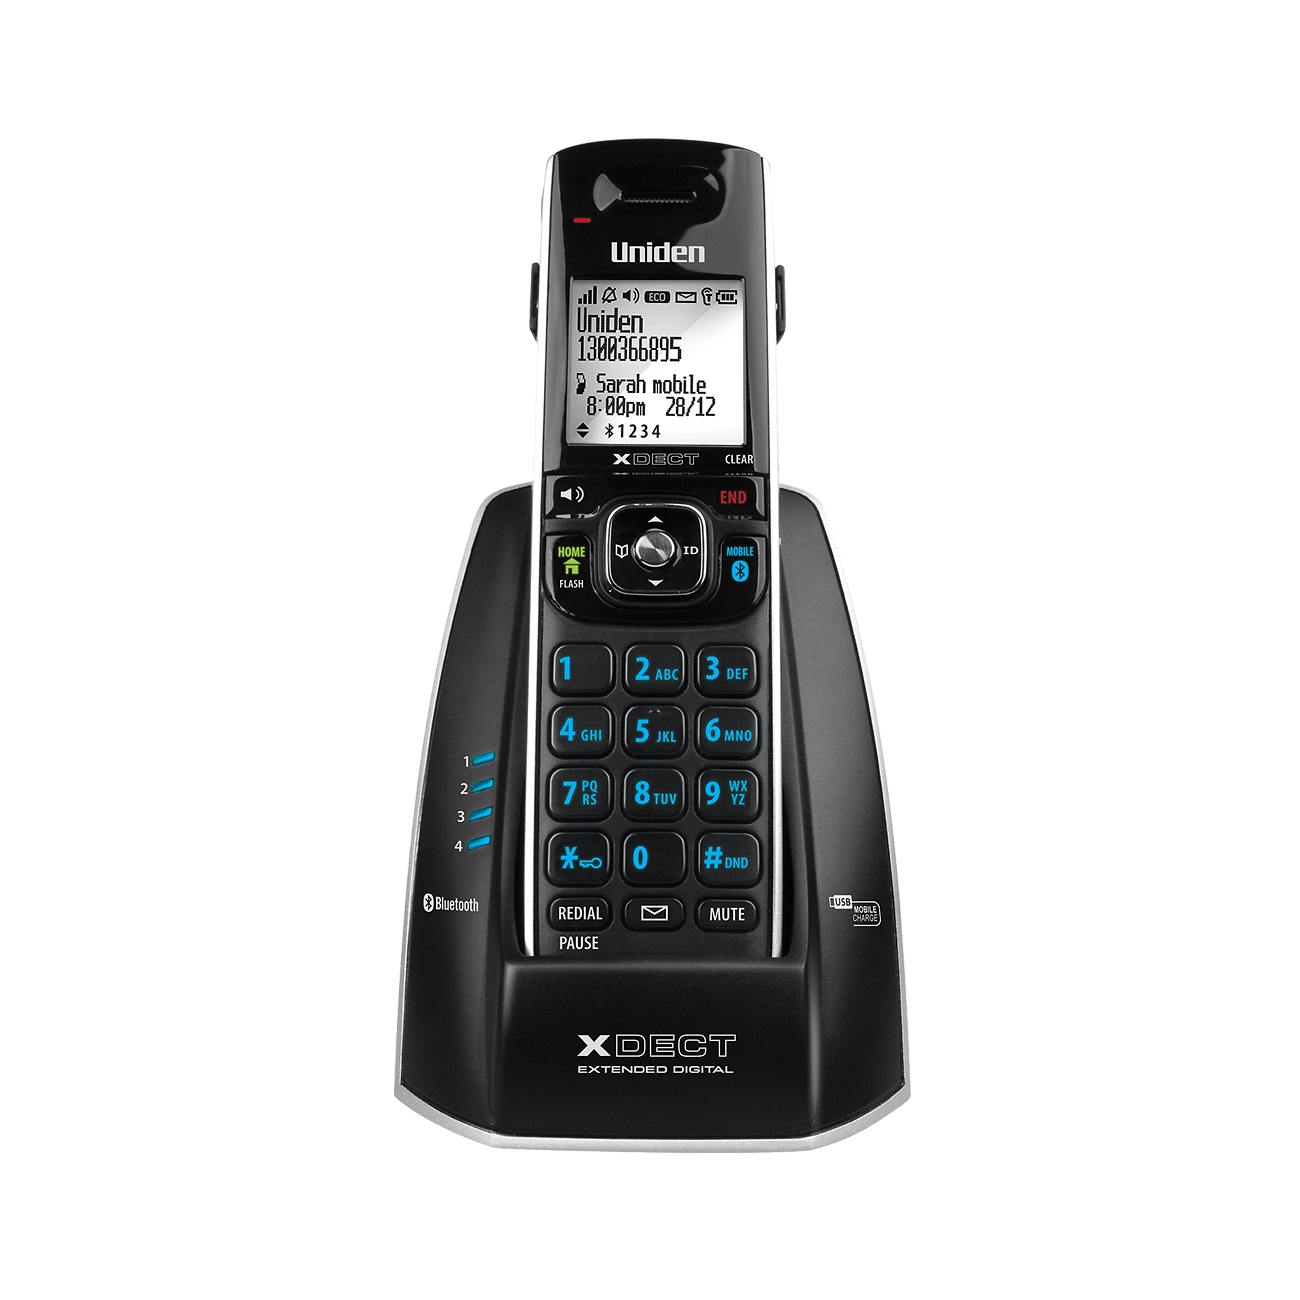 Uniden Cordless Phone 8315 (2nd hand, as new) Image